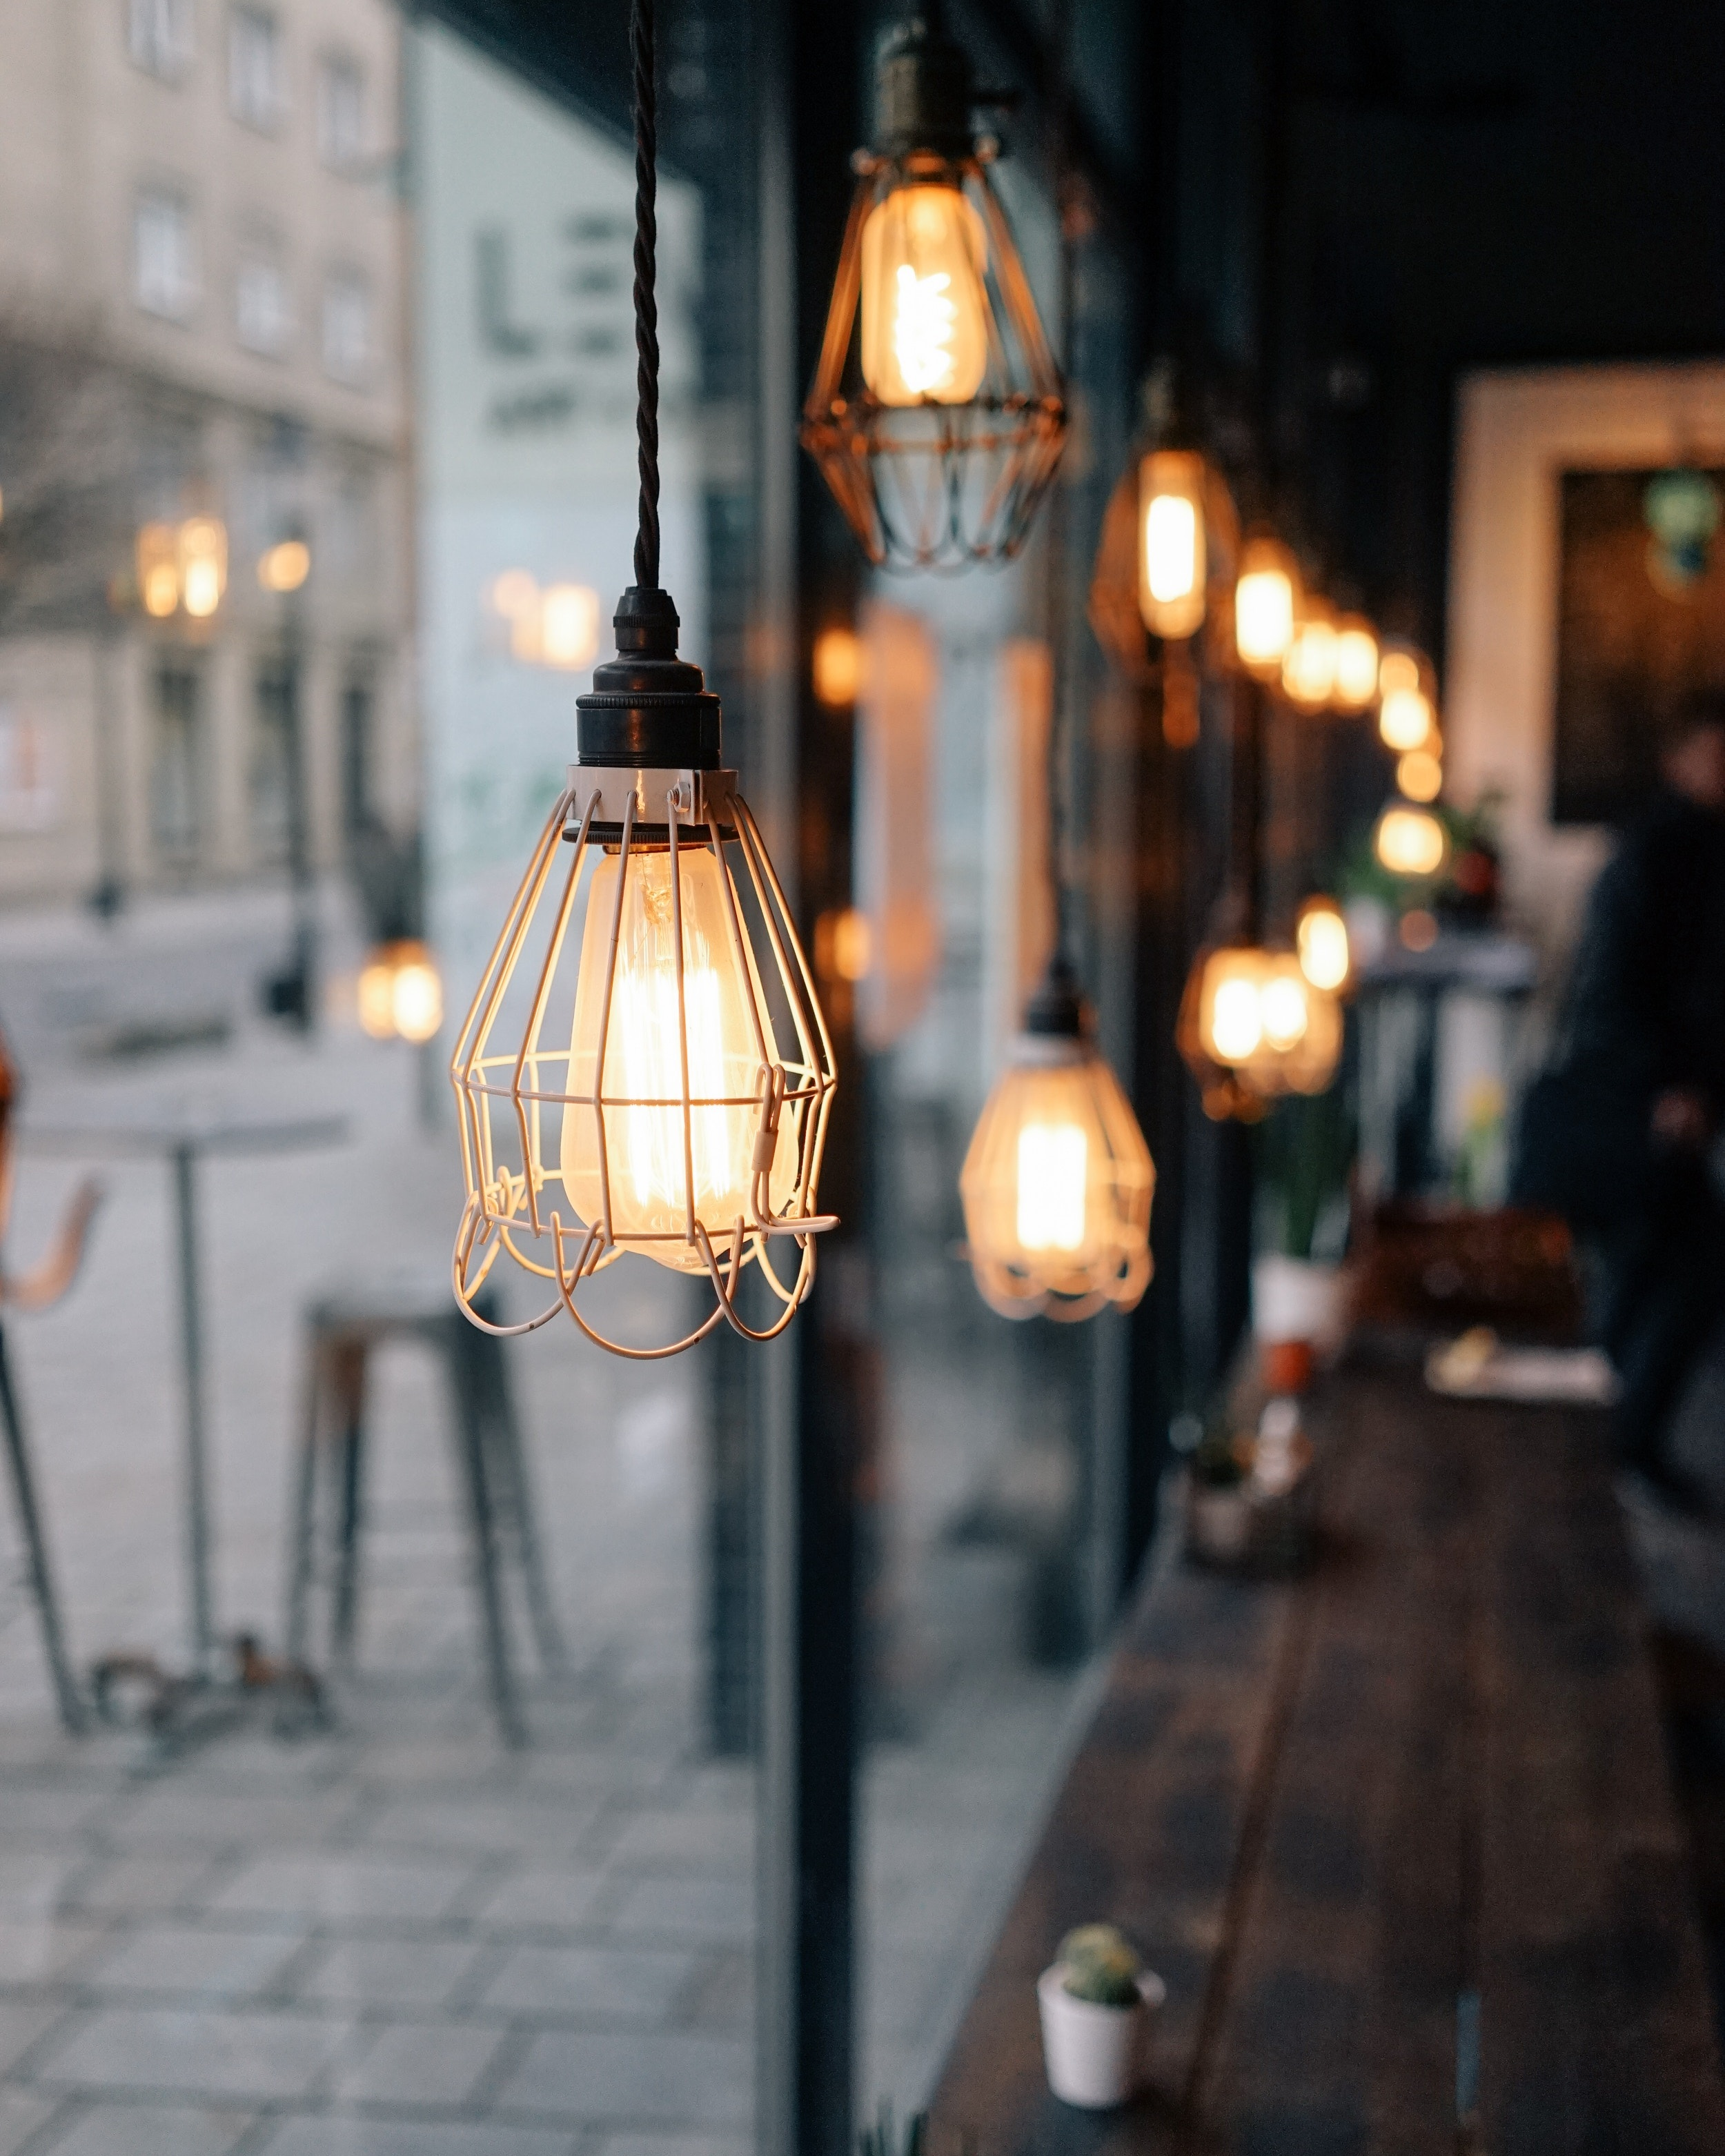 COMMERCIAL - Property Developers or Landlords, need a reliable electrician you can trust to get on with the job?We can advise you on the most cost effective solution for your project, ensure you meet industry guidelines and just get on with what needs to be done quickly and efficiently.